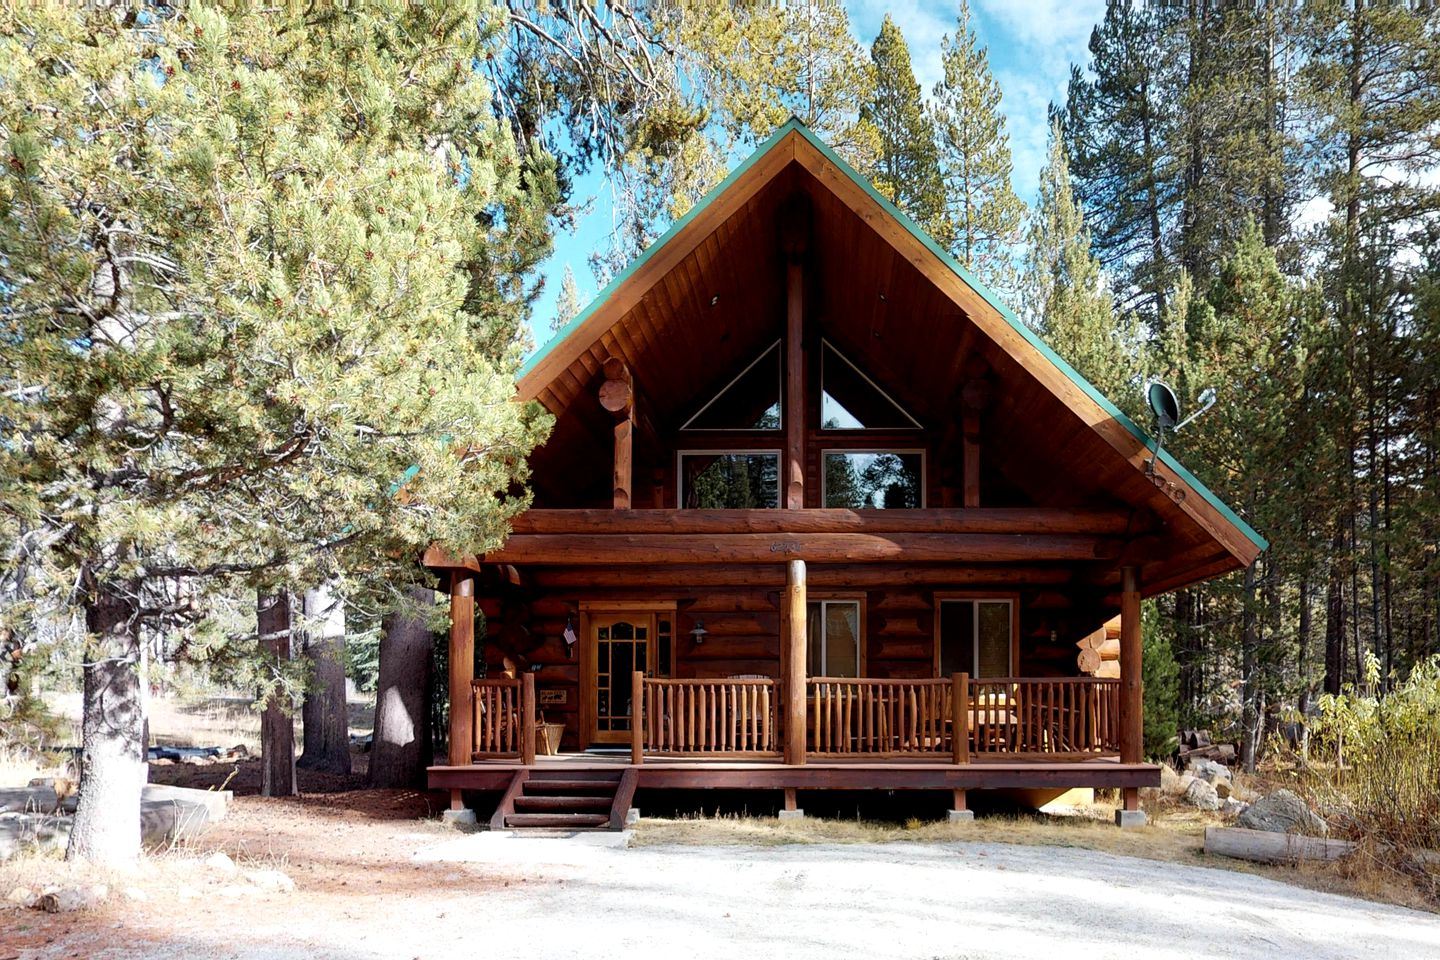 A-frame log cabin surrounded by pine trees in Lakeshore, CA.